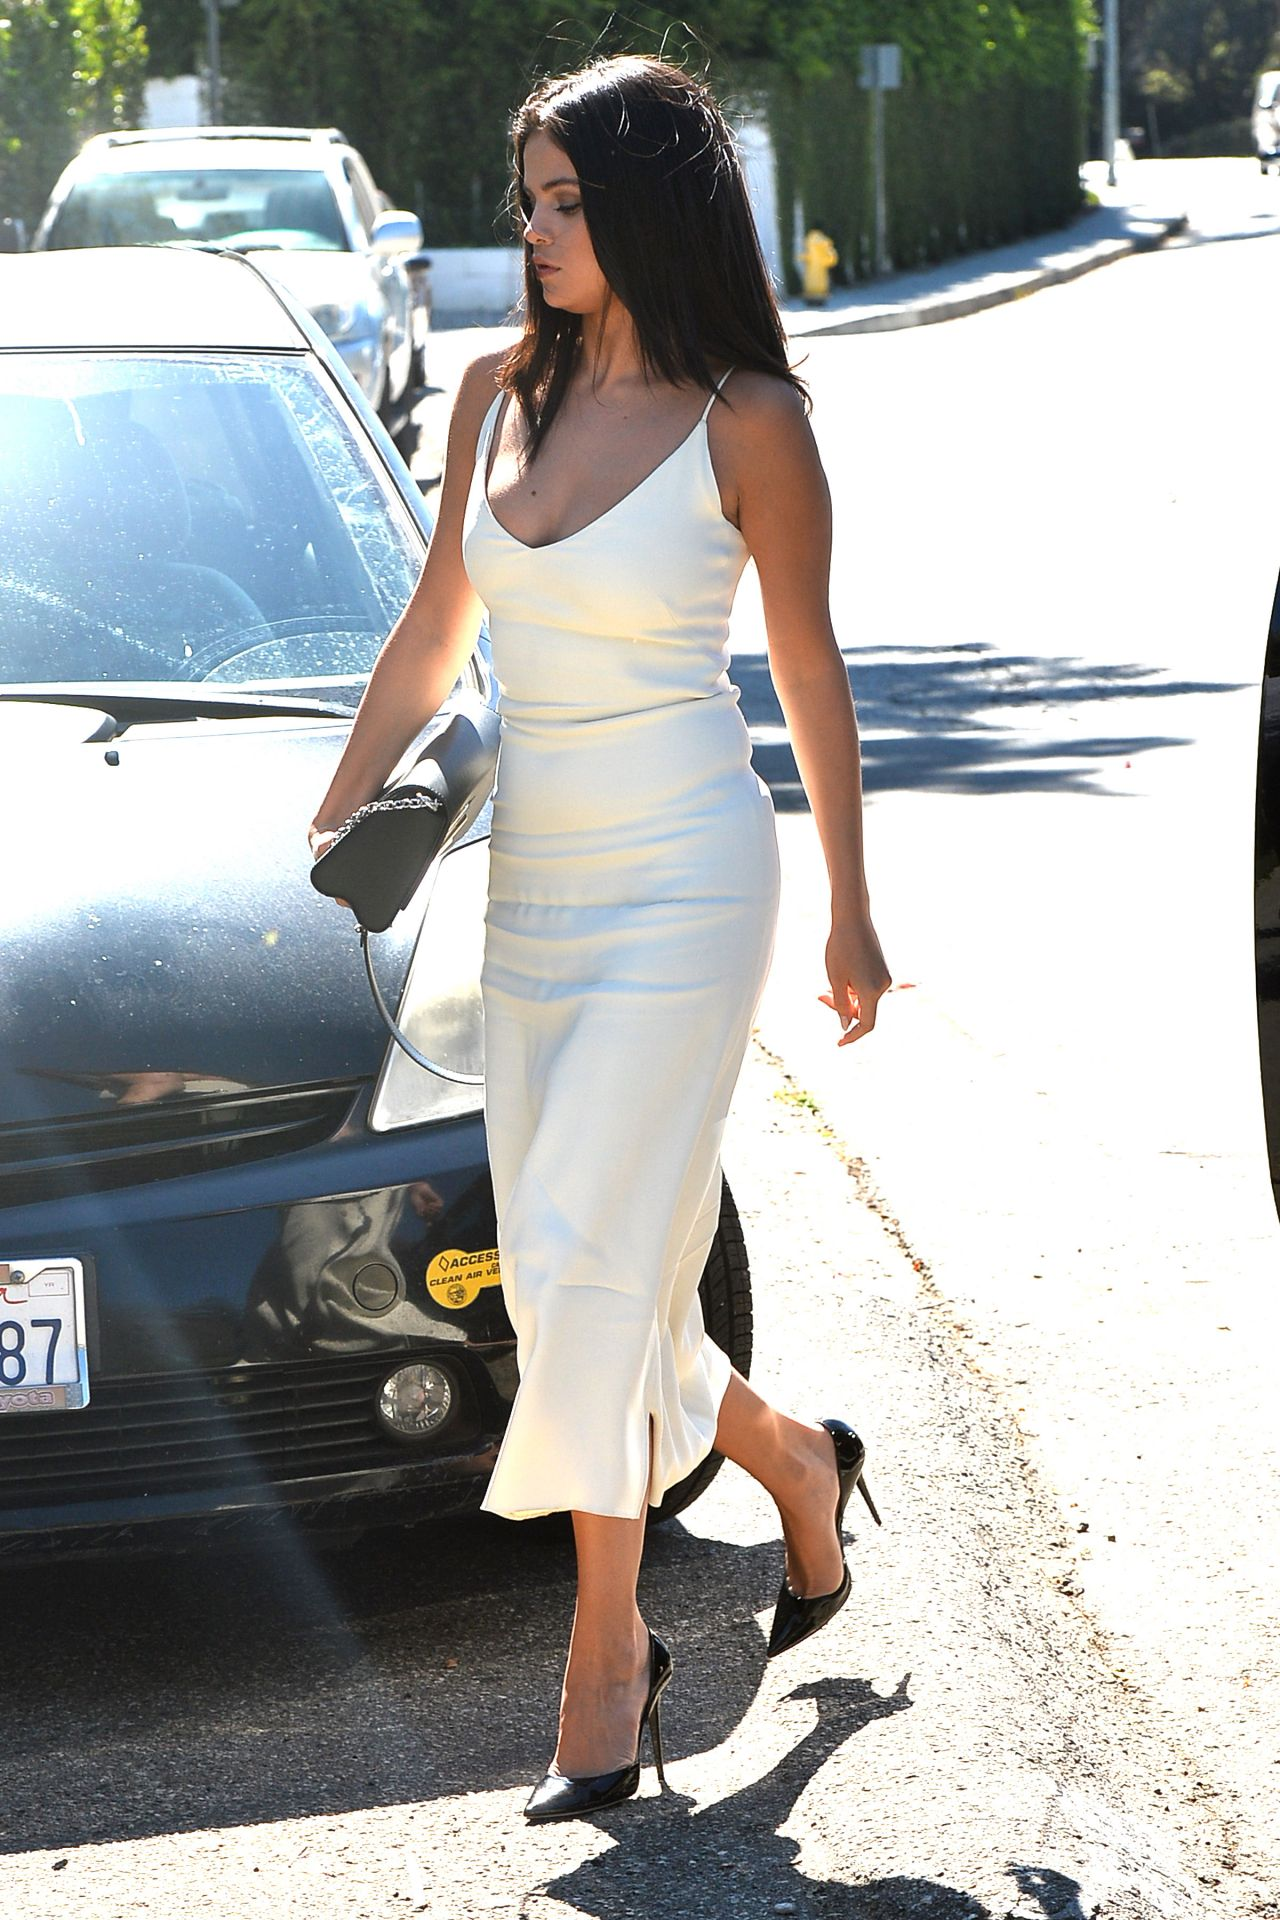 selena-gomez-style-arriving-to-jennifer-klein-s-day-of-indulgence-summer-party-in-brentwood_6